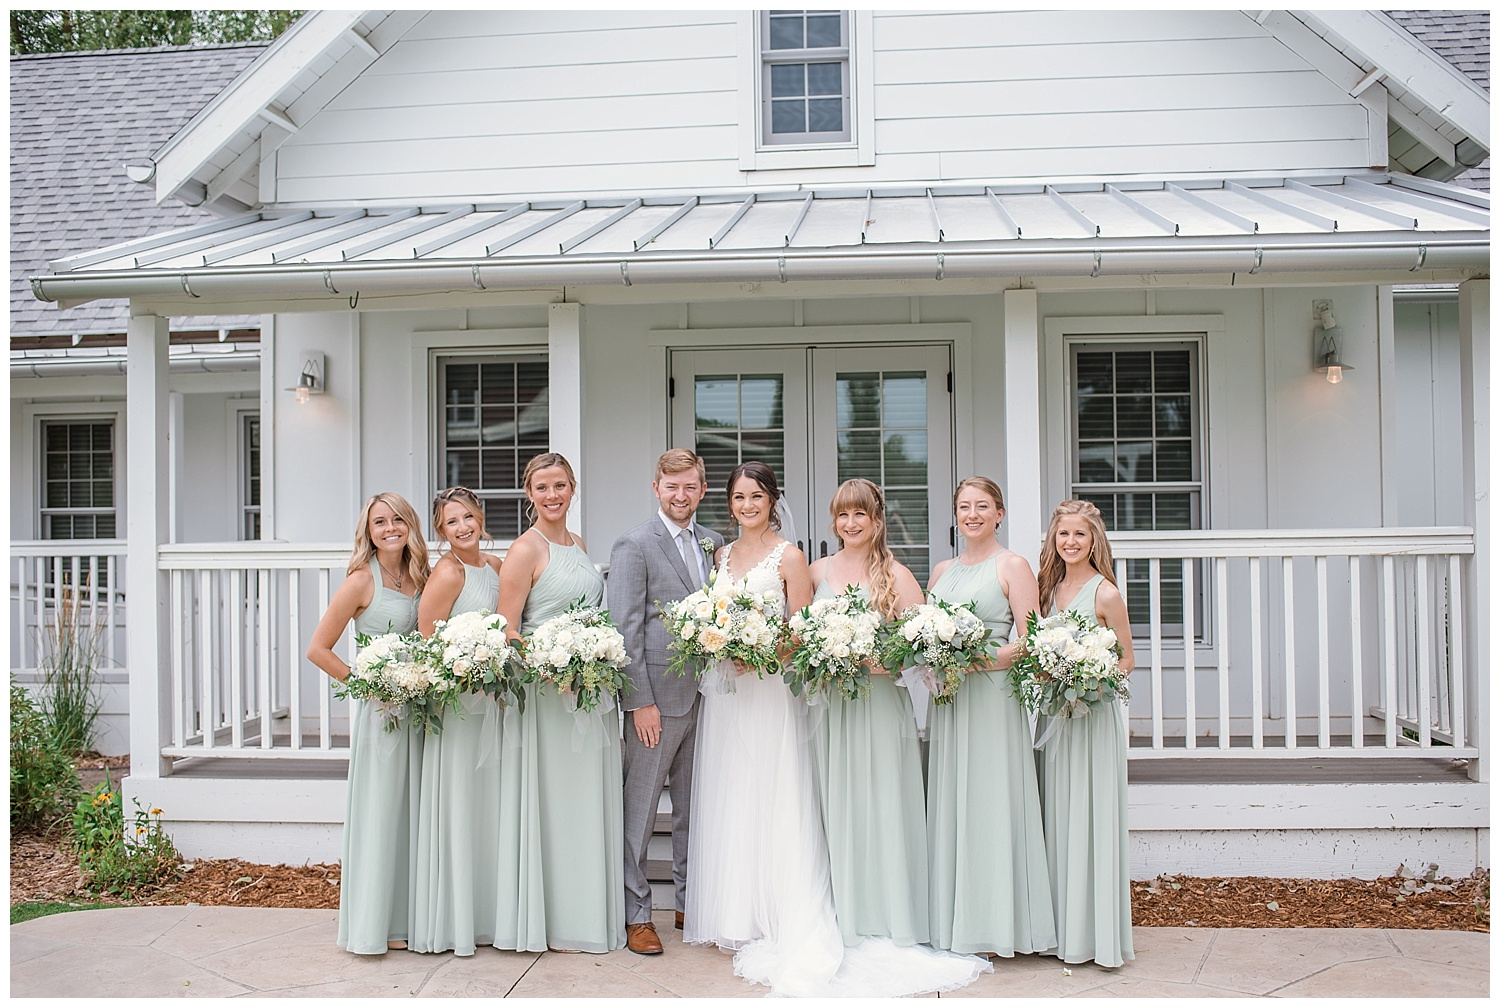 bridal party portraits, the barn at raccoon creek, colorado wedding photographer, denver wedding photographer, colorado elopement photographer, rocky mountain wedding photographer